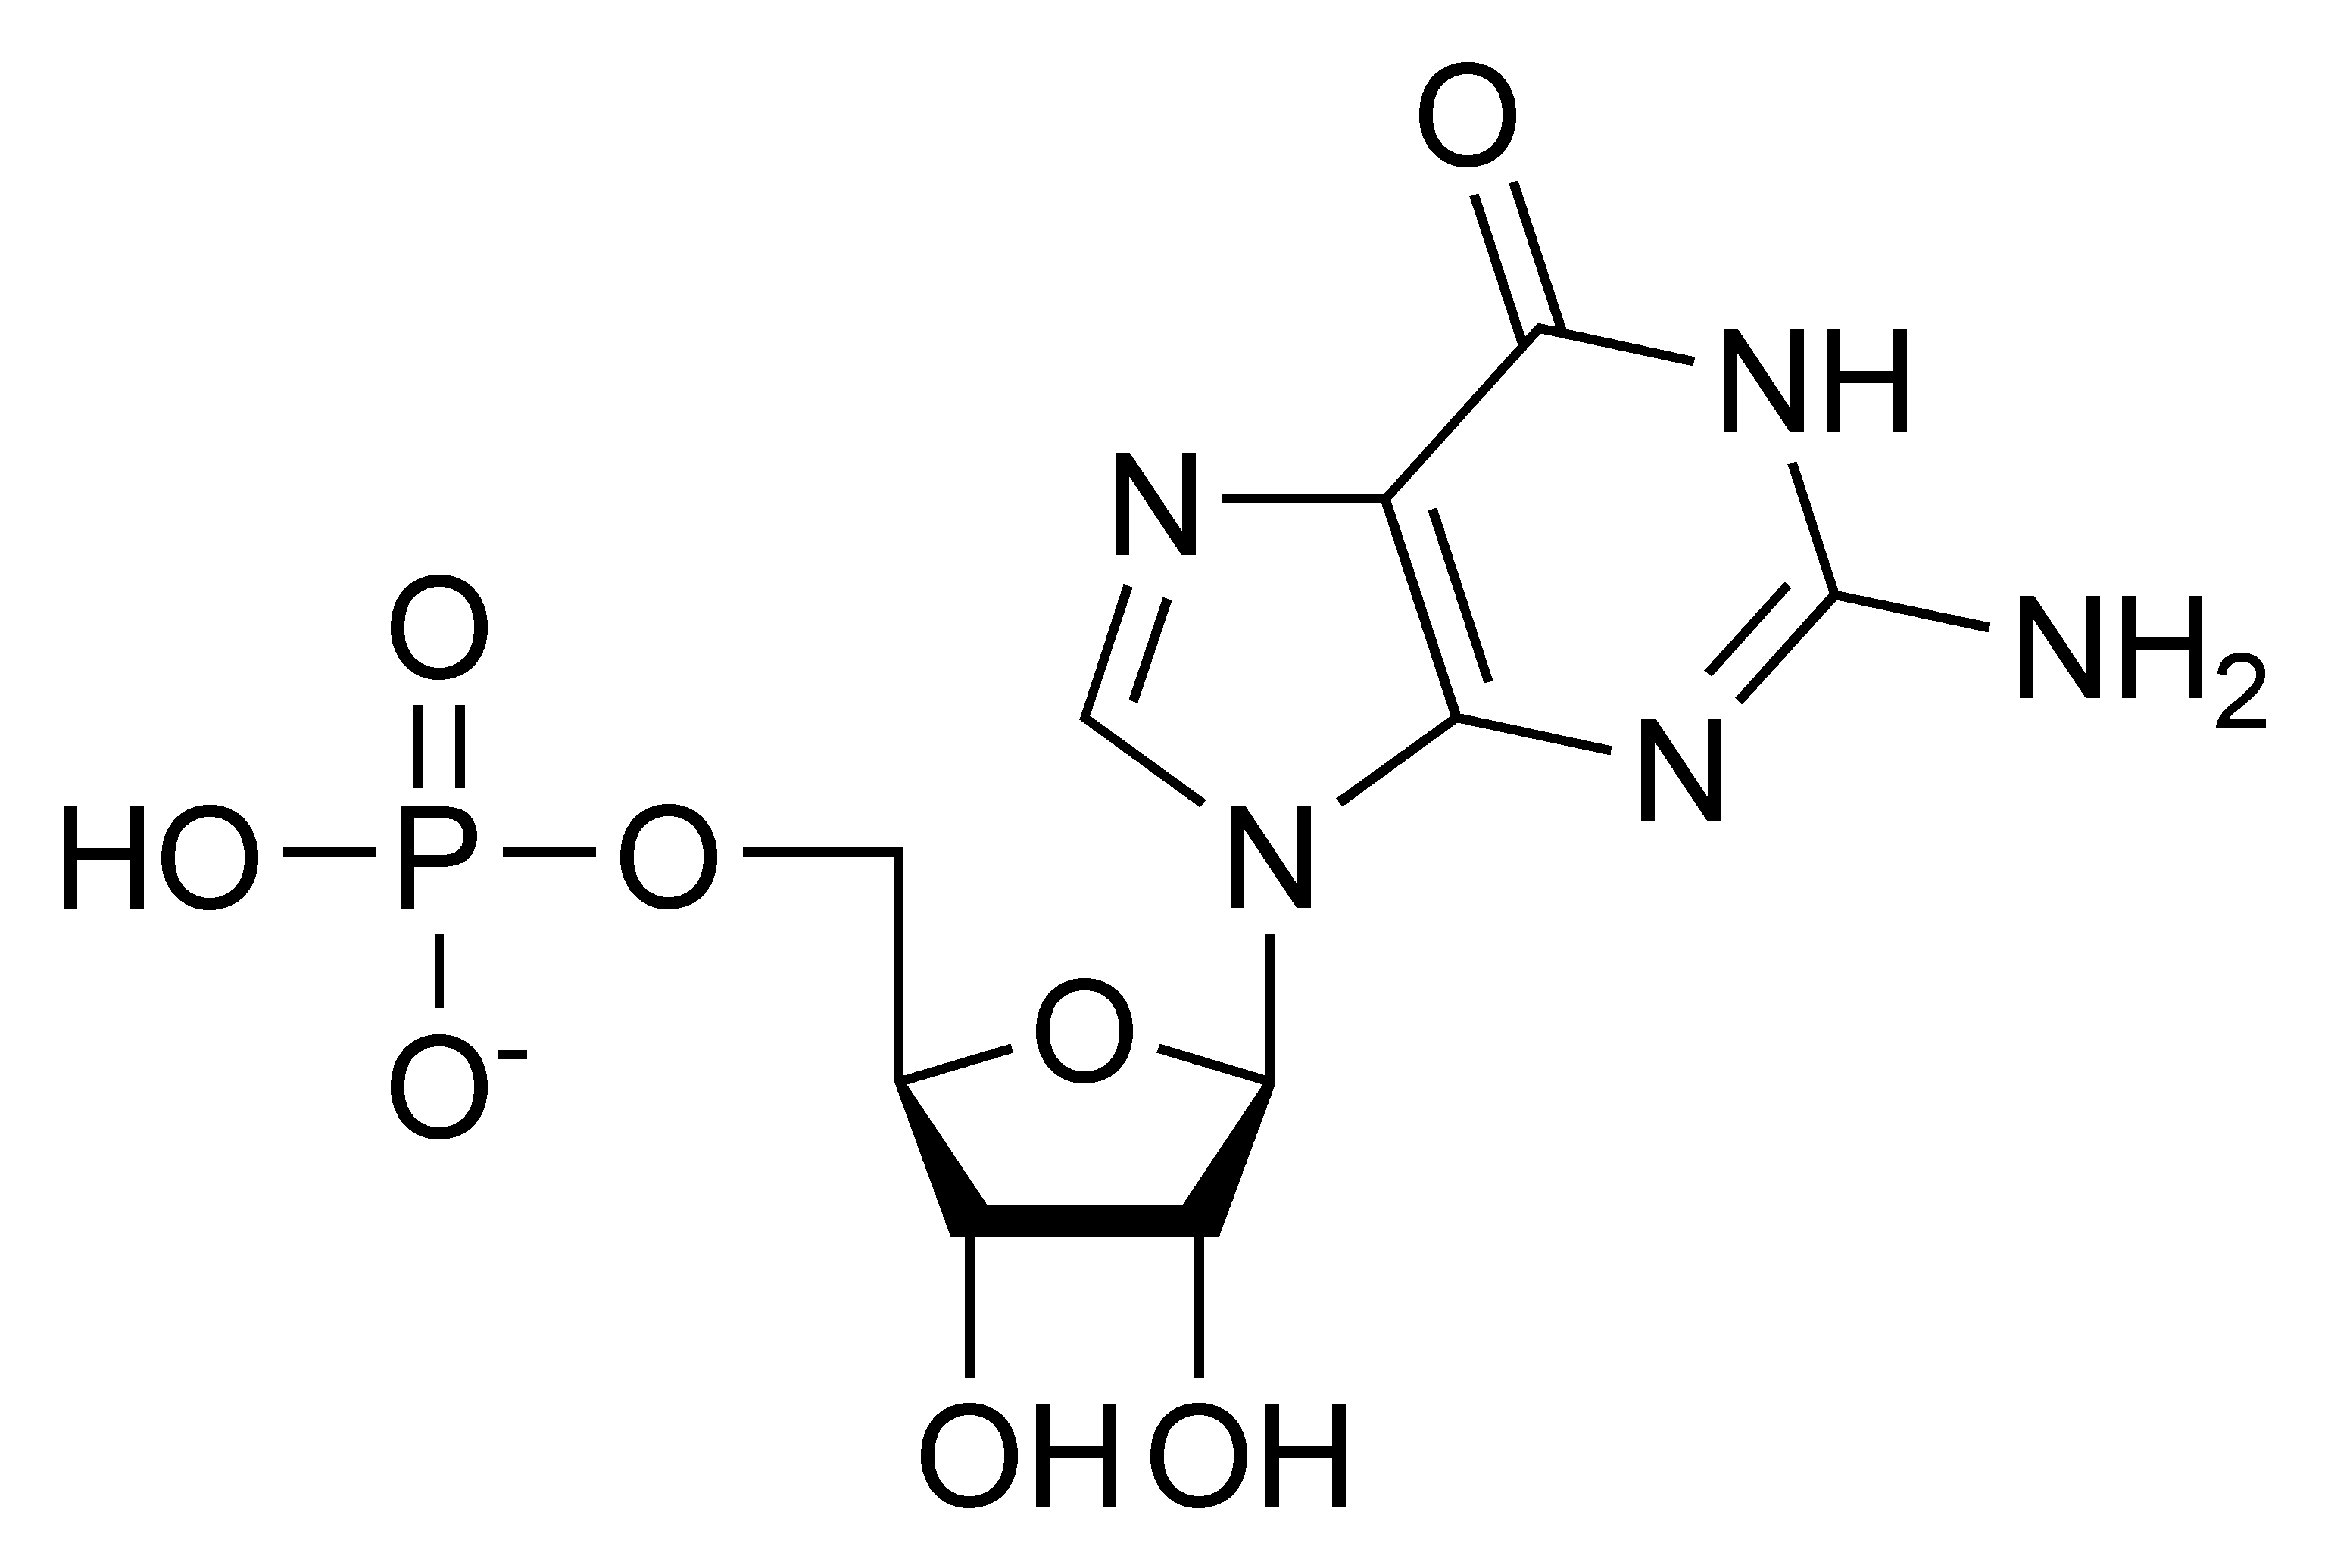 Chemical structure of guanosine monophosphate